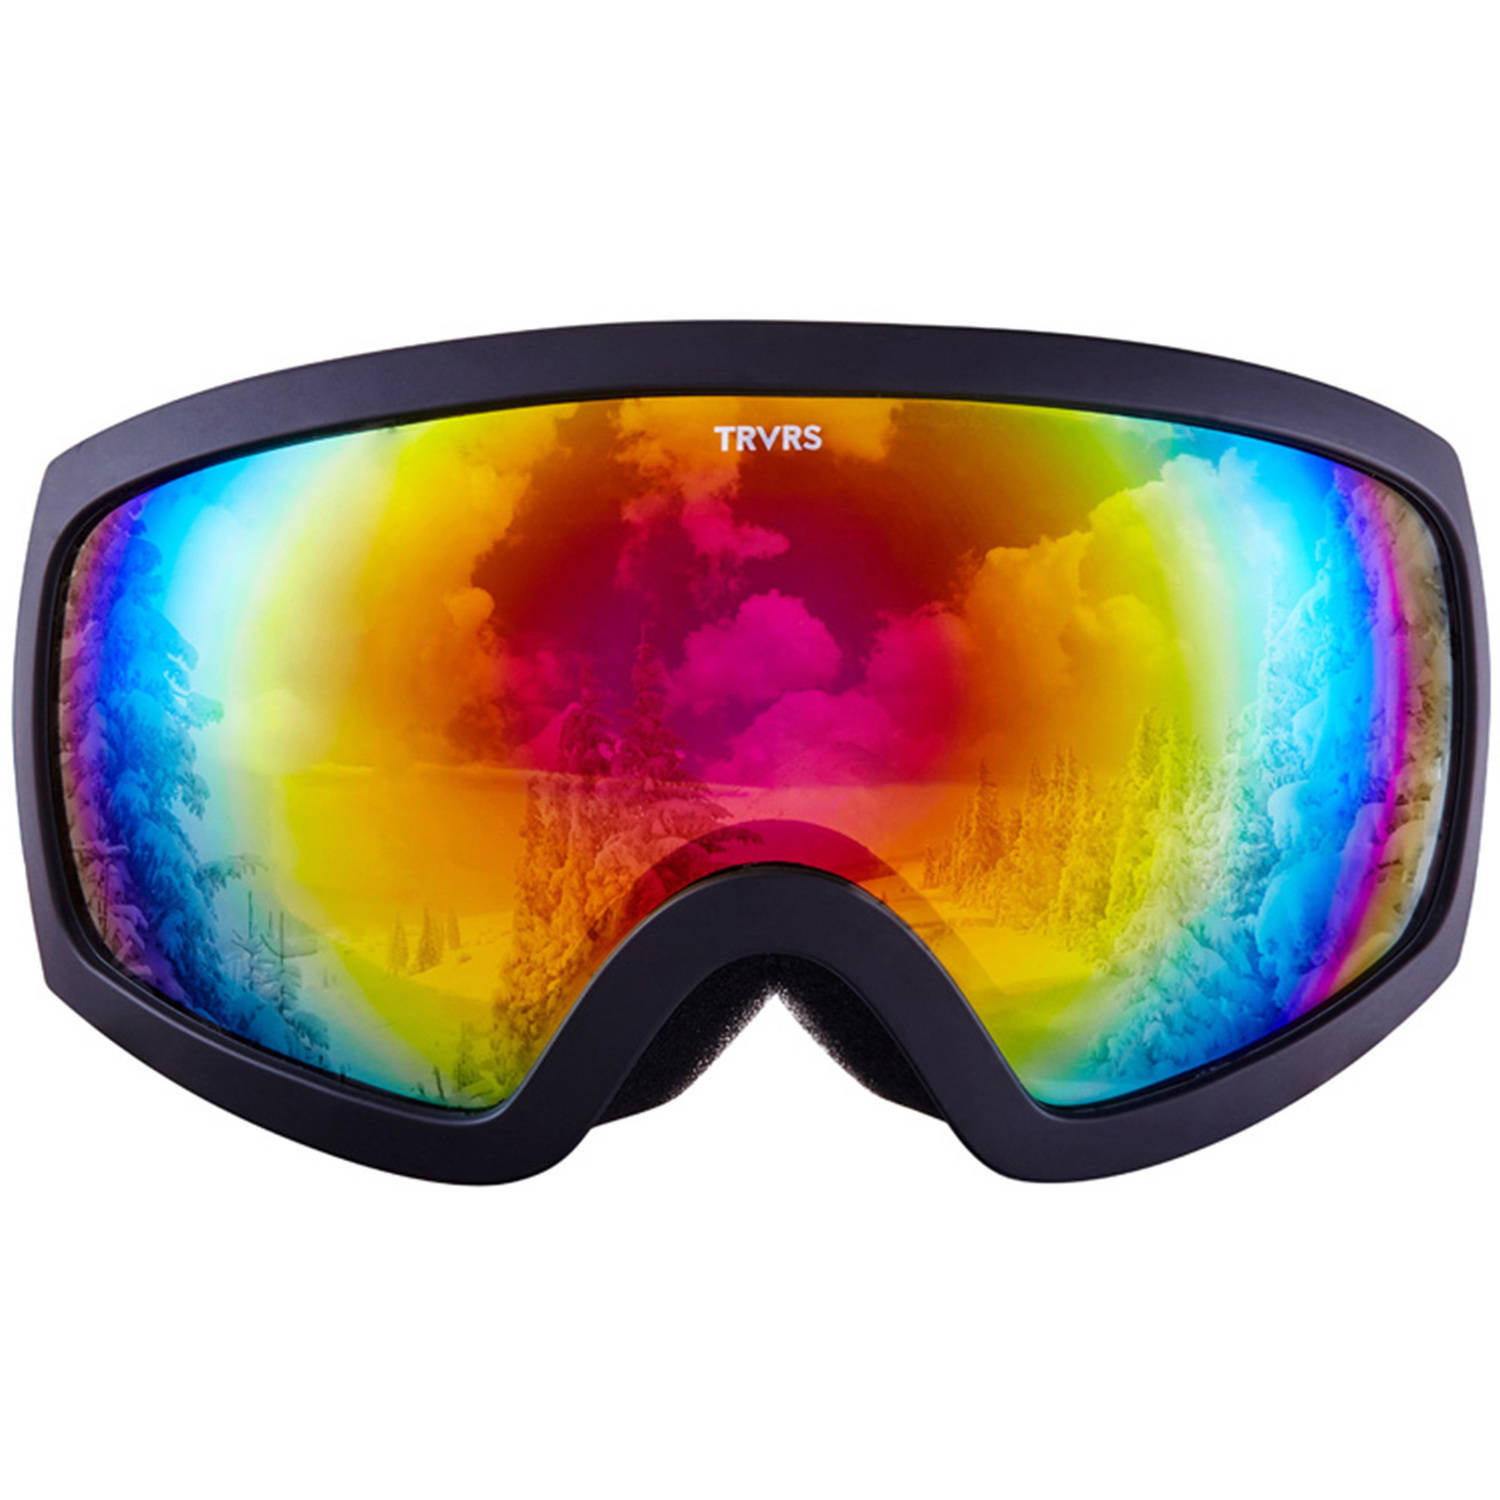 Traverse Varia Ski, Snowboard, and Snowmobile Goggles, Obsidian with ...